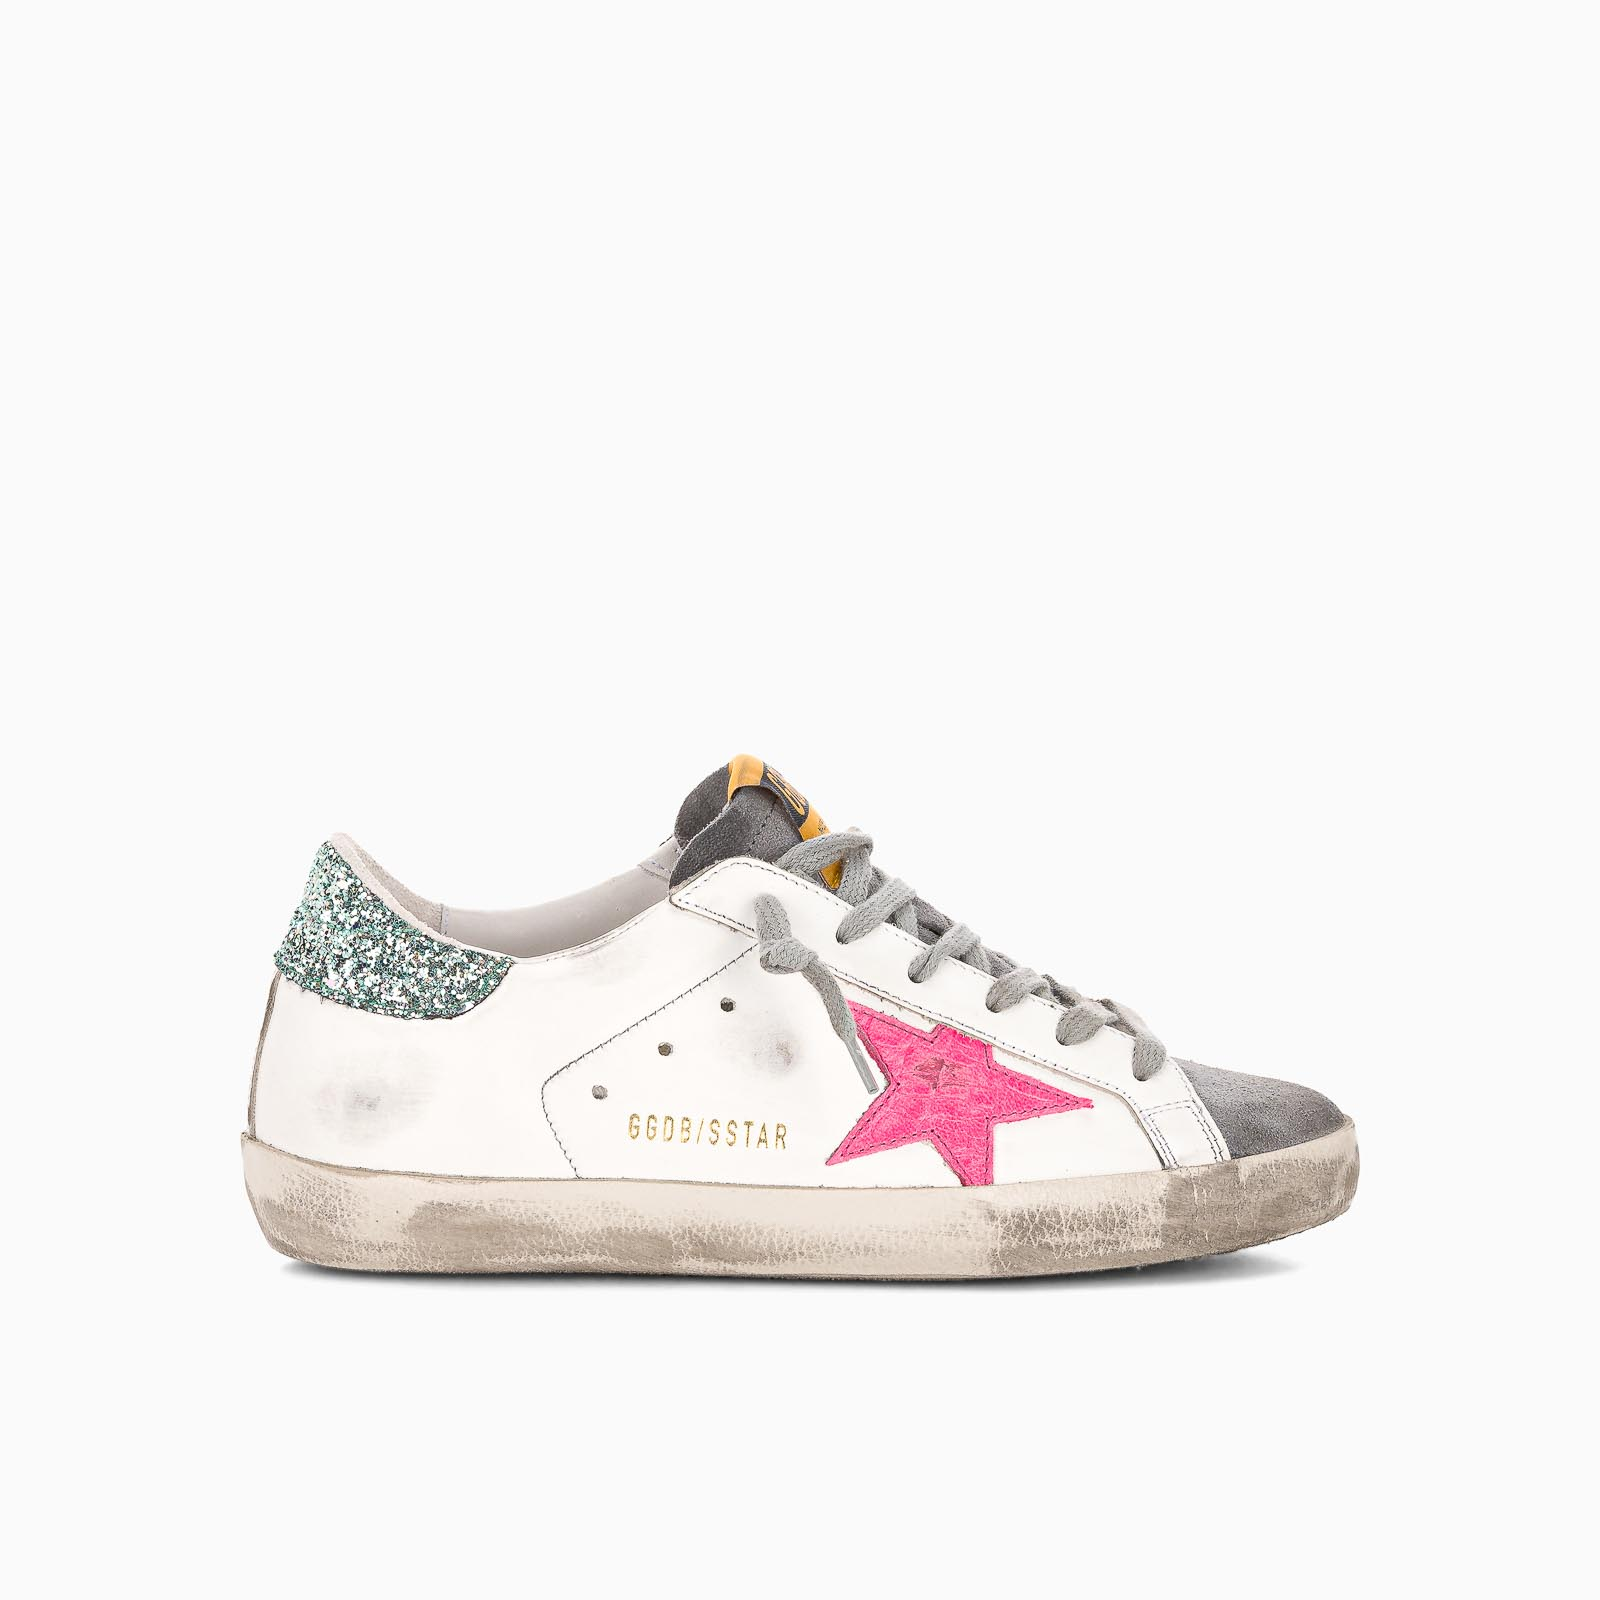 Golden Goose WHITE LEATHER SUPER-STAR SNEAKERS WITH GLITTERY HEEL TAB